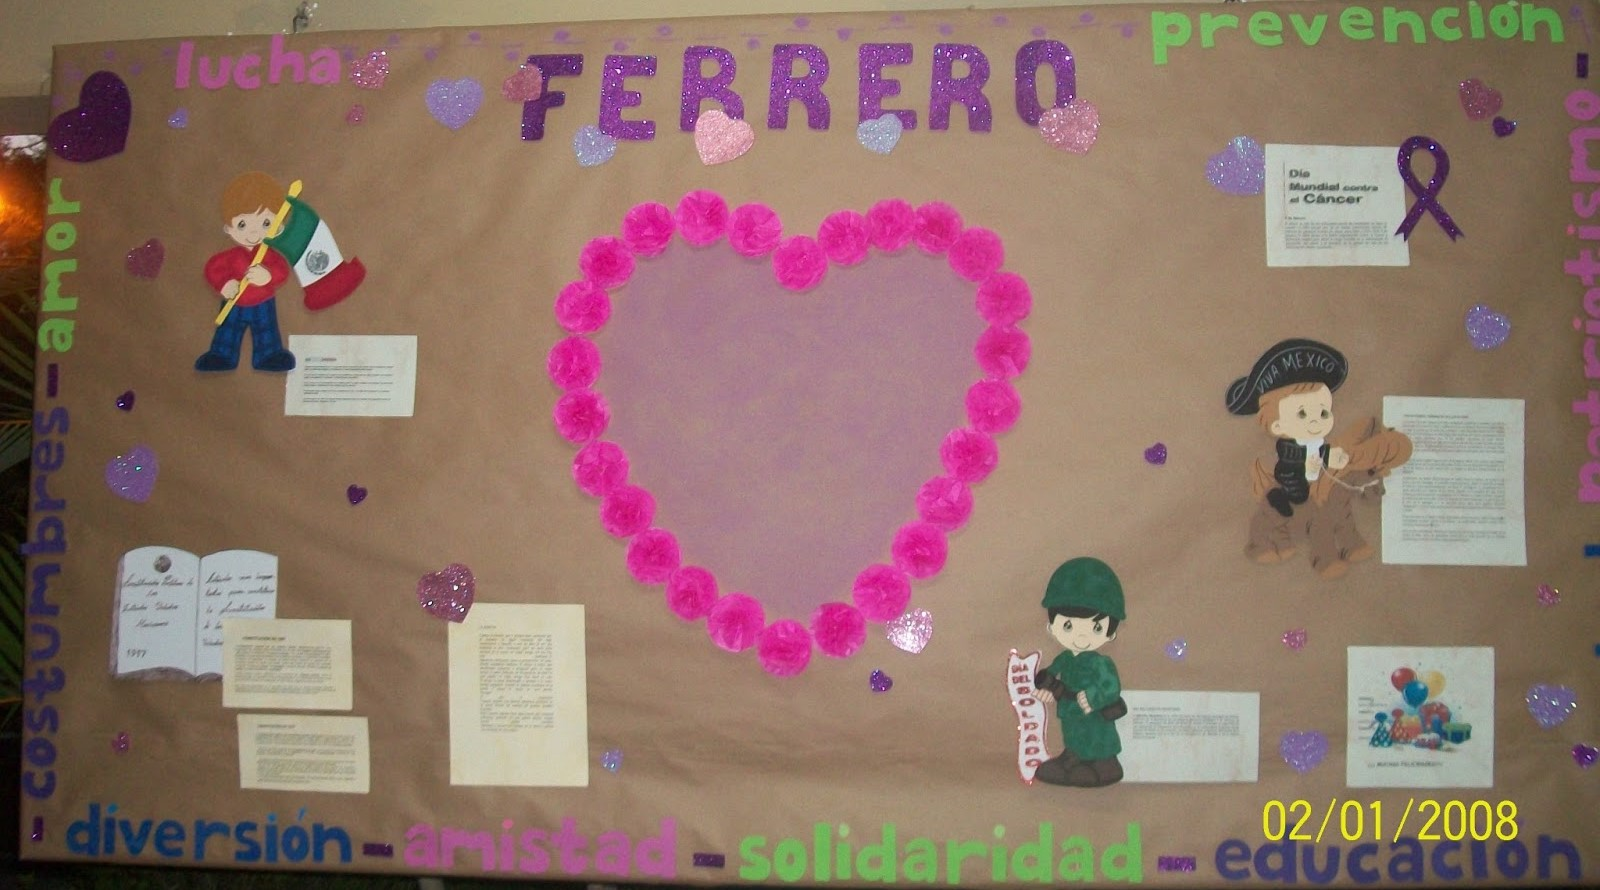 Periodico mural febrero 1 imagenes educativas for Como decorar un mural